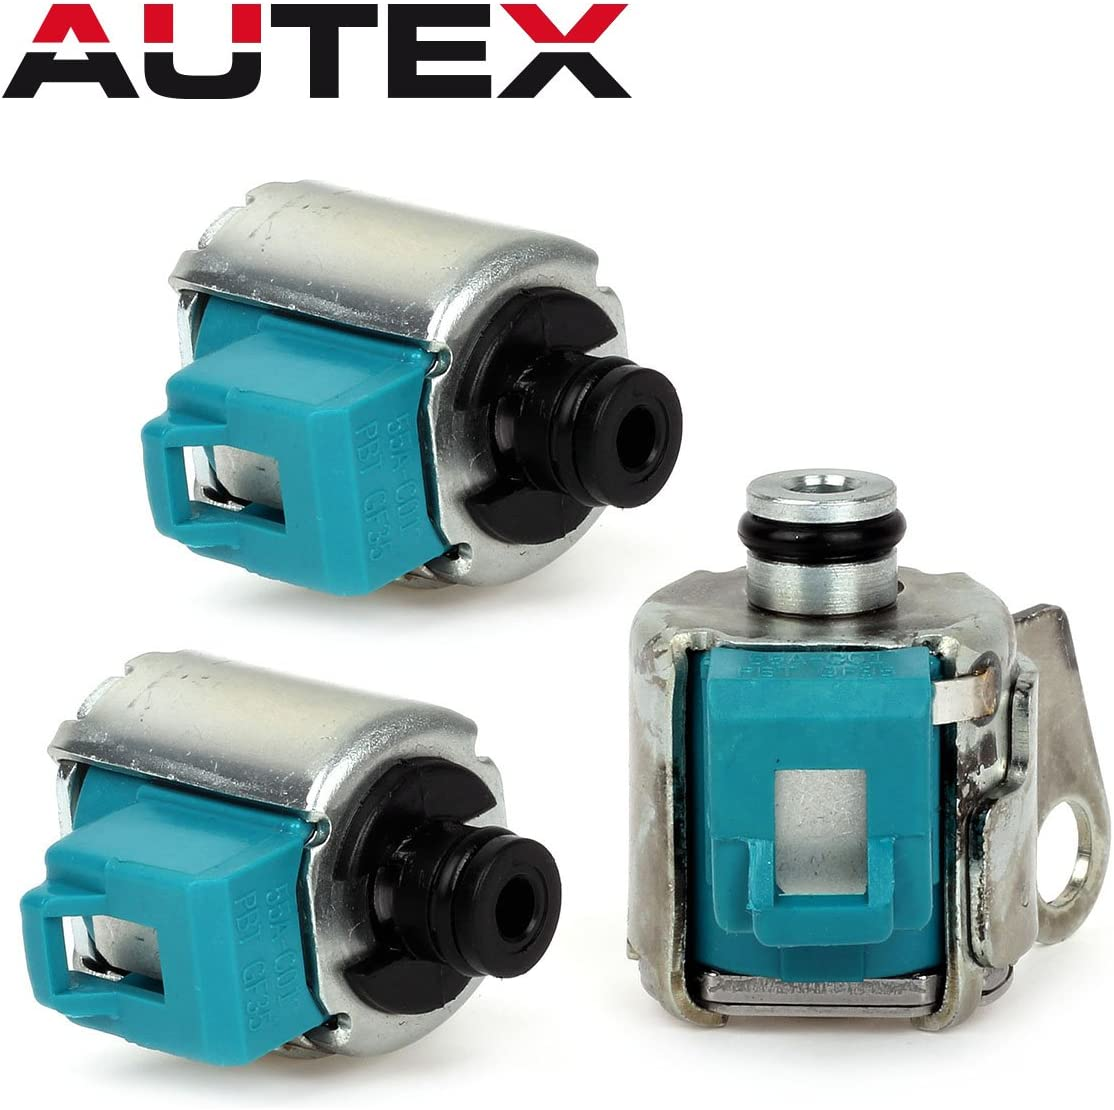 AUTEX A340E A340F AW4 Shift TCC Lock Up Solenoid Set Replacements For on jeep panel wiring, jeep wiring harness, jeep door wiring, jeep light wiring, jeep ignition switch problems, jeep gauge wiring, jeep wiring diagram, jeep horn wiring, jeep fuse wiring, jeep coil wiring, jeep relay wiring, jeep switch wiring, jeep transmission wiring, jeep winch wiring, jeep voltage regulator wiring, jeep blower wiring, jeep starter, jeep ignition wiring, jeep alternator wiring, jeep compressor wiring,